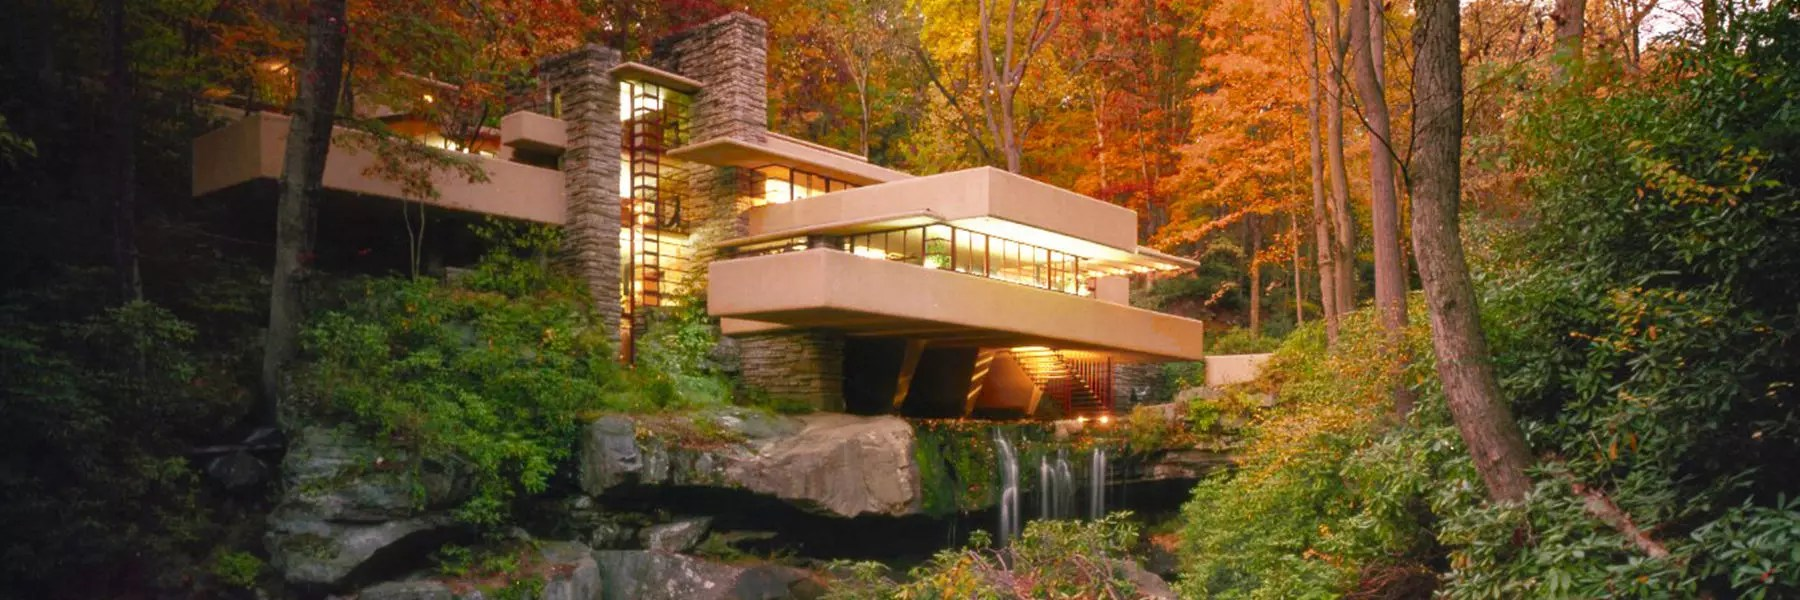 Fall Evening Wallpapers Laurel Highlands Pa Frank Lloyd Wright Fallingwater Tours